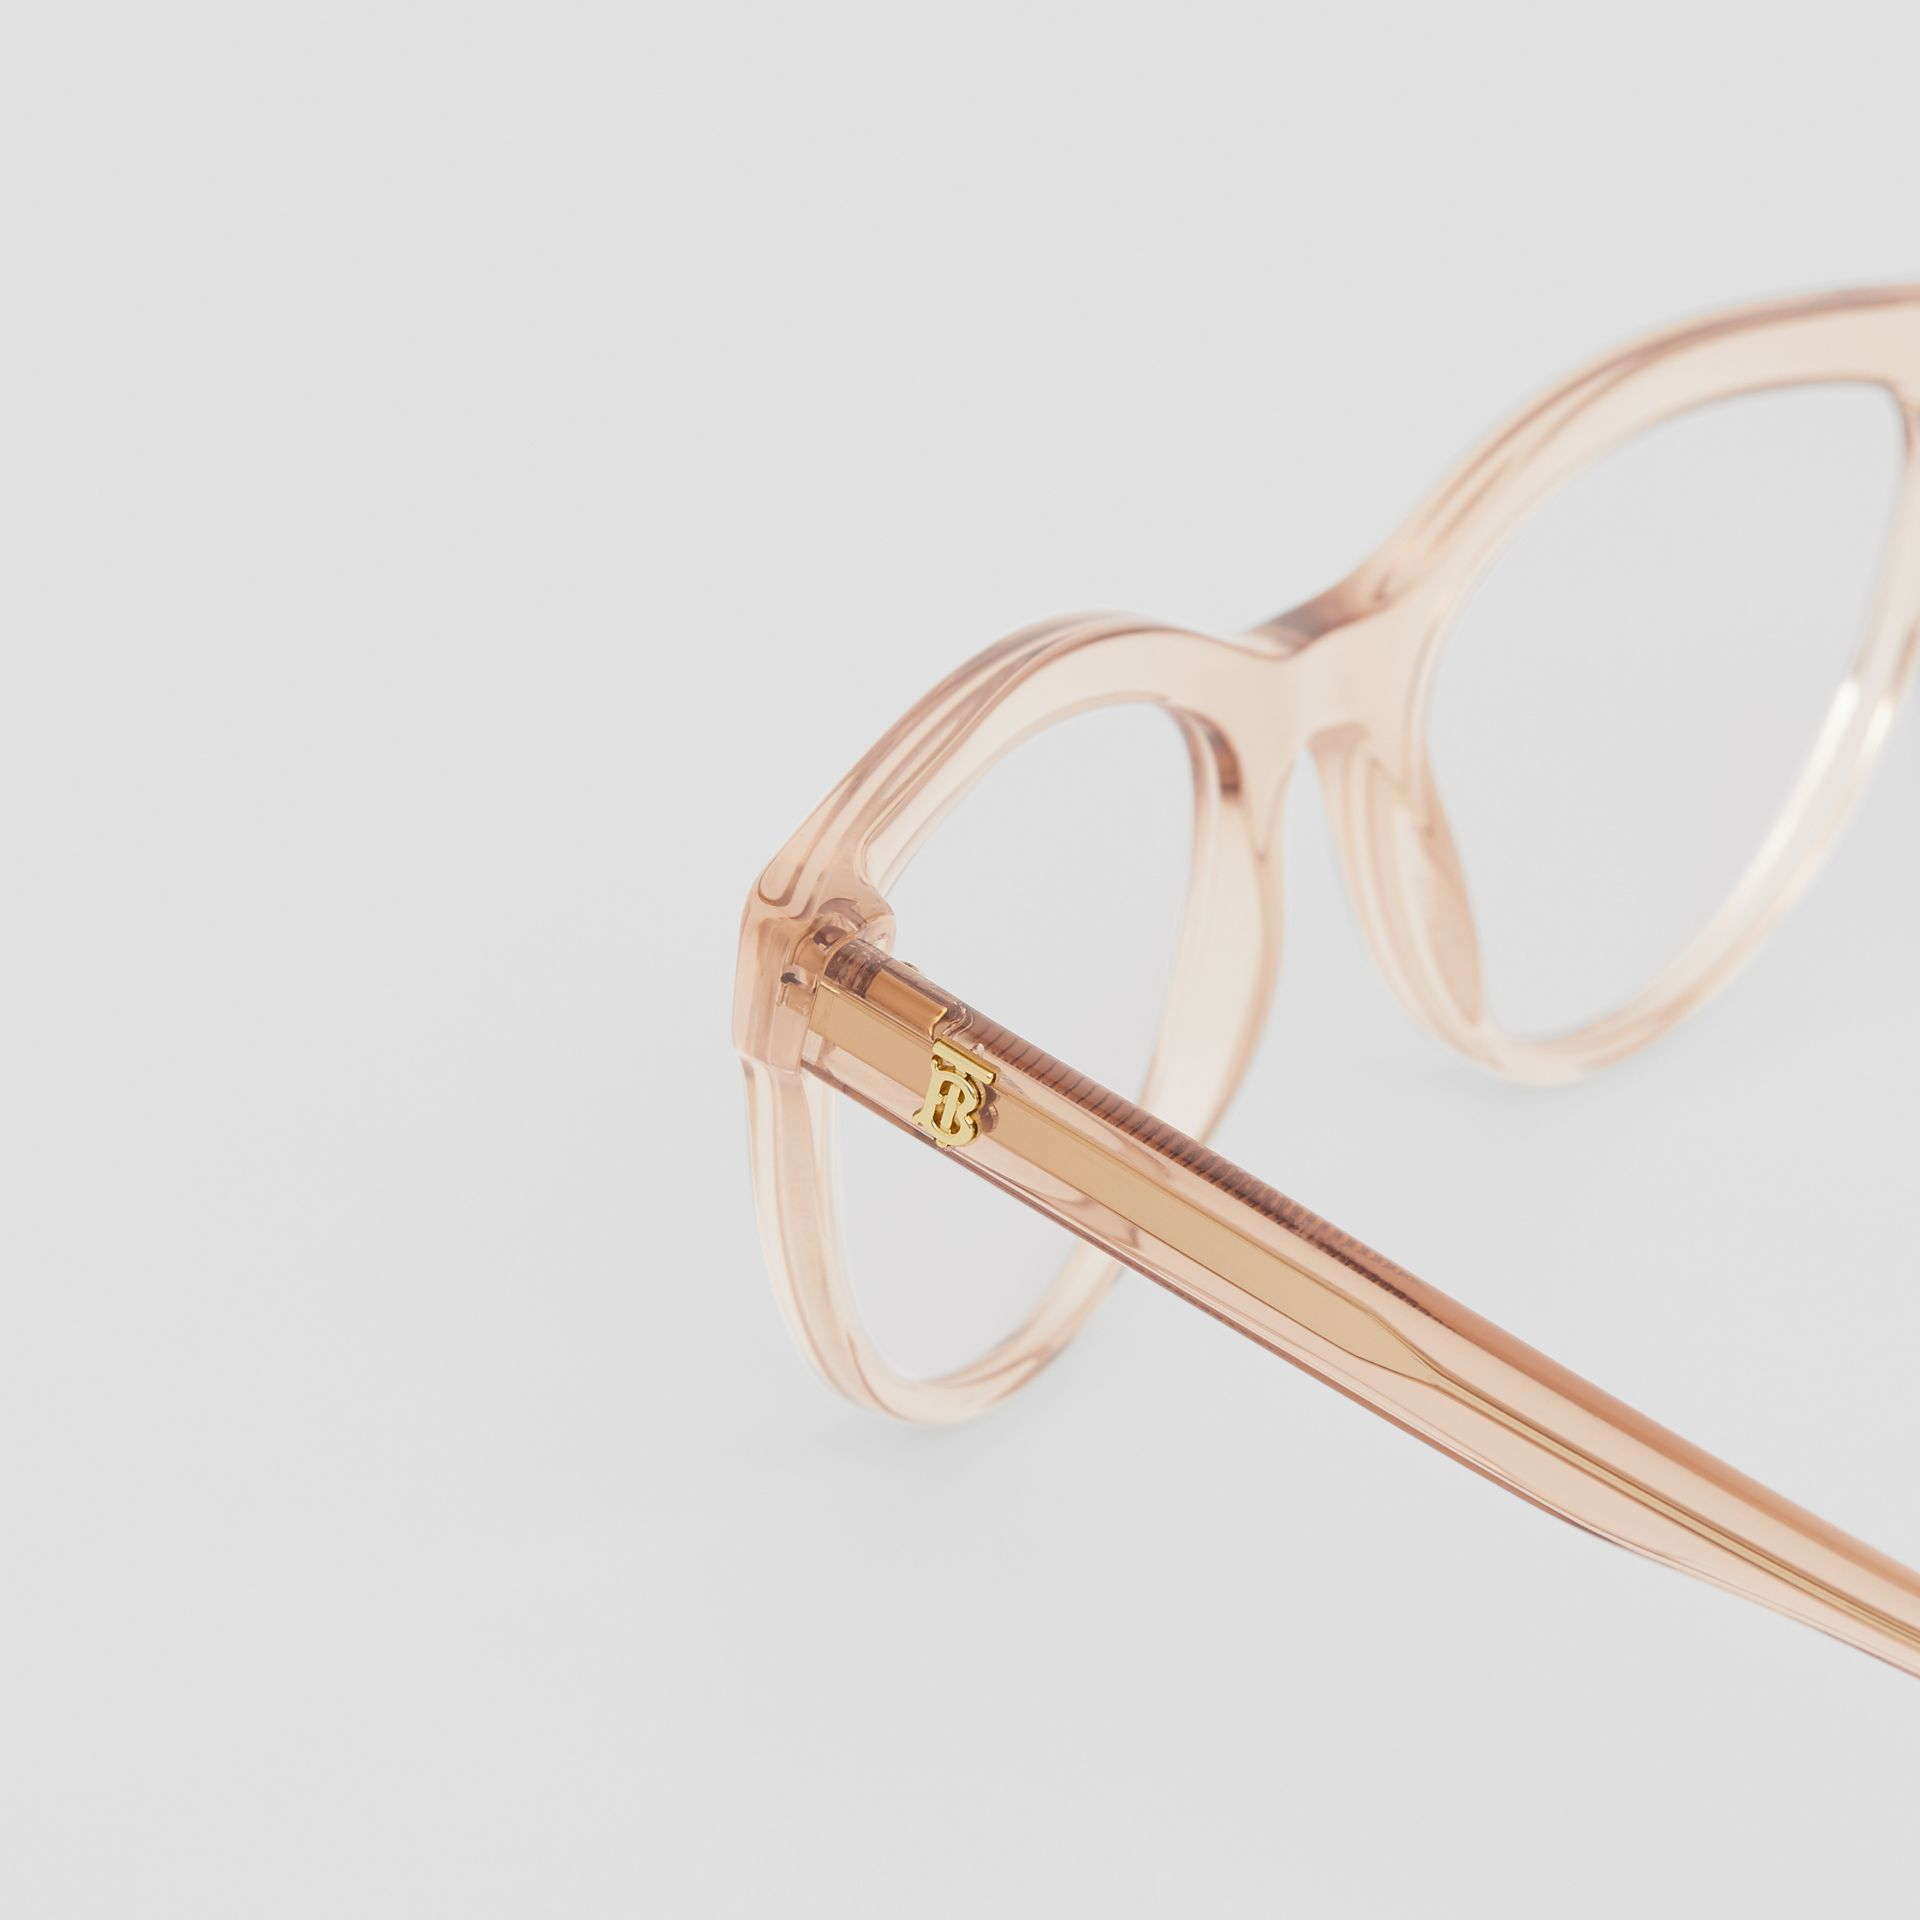 Monogram Motif Cat-eye Optical Frames in Transparent Peach - Women | Burberry United States - gallery image 1